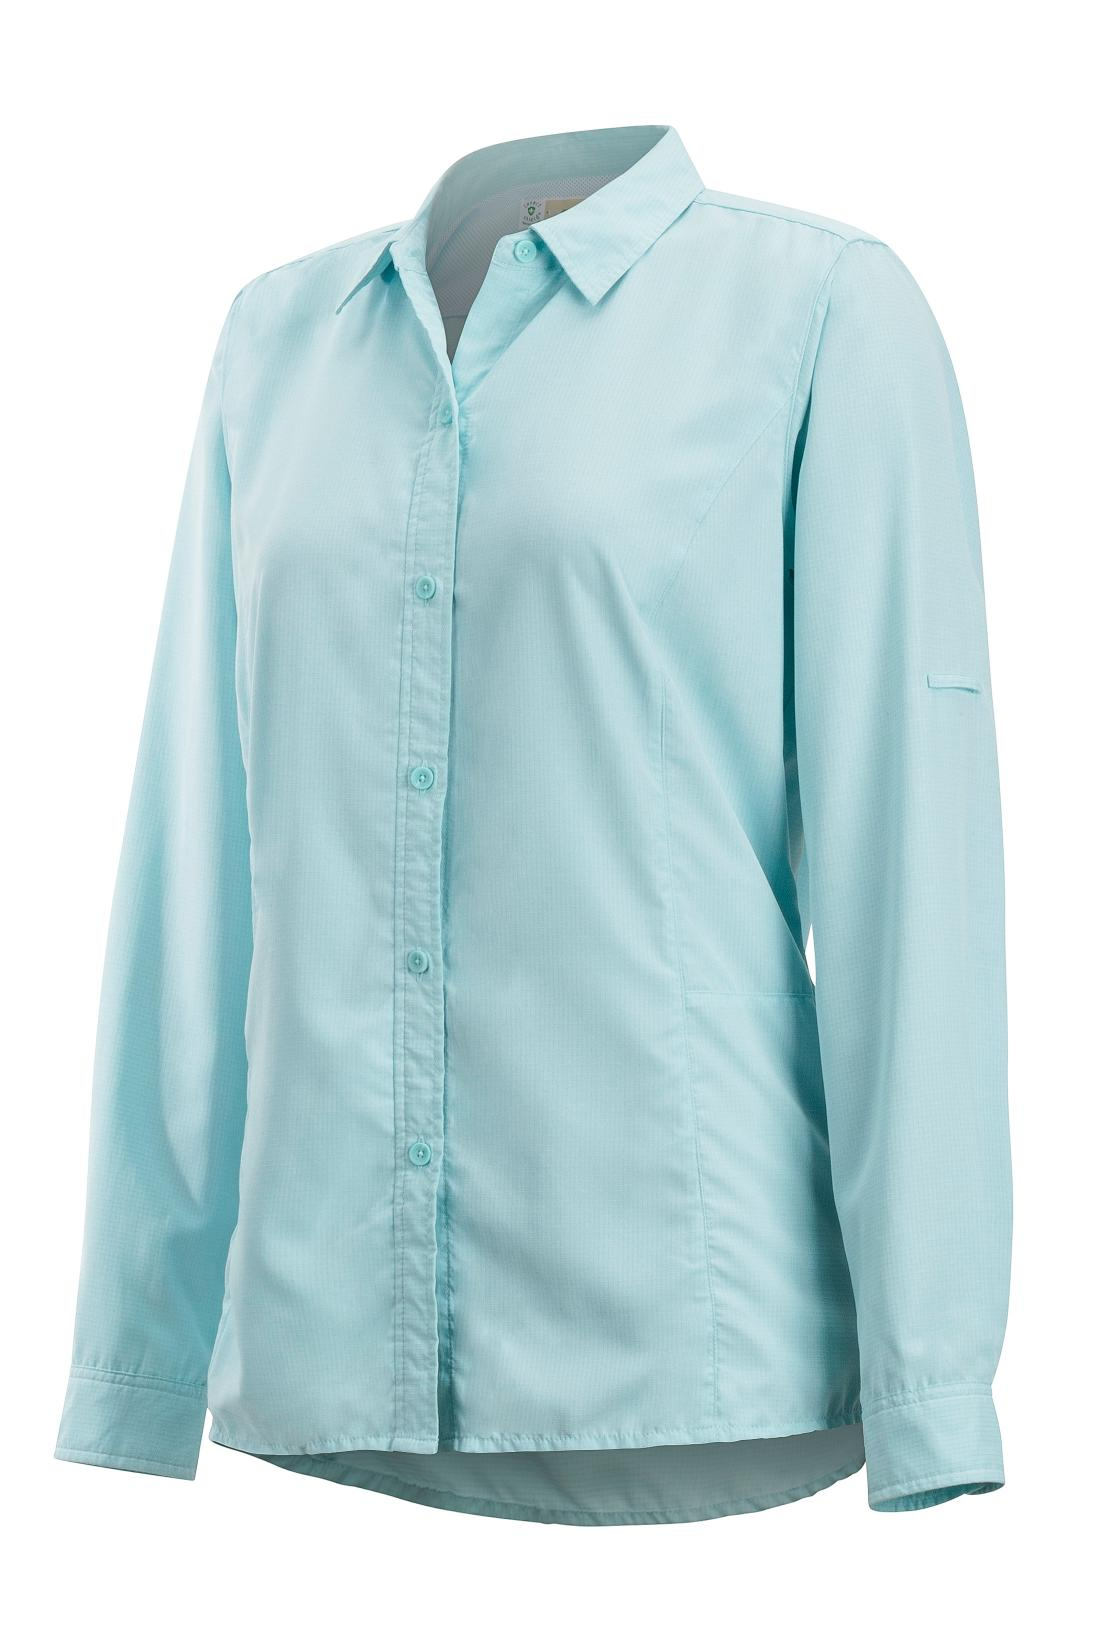 ExOfficio-BugsAway Brisa Long Sleeve - Women's